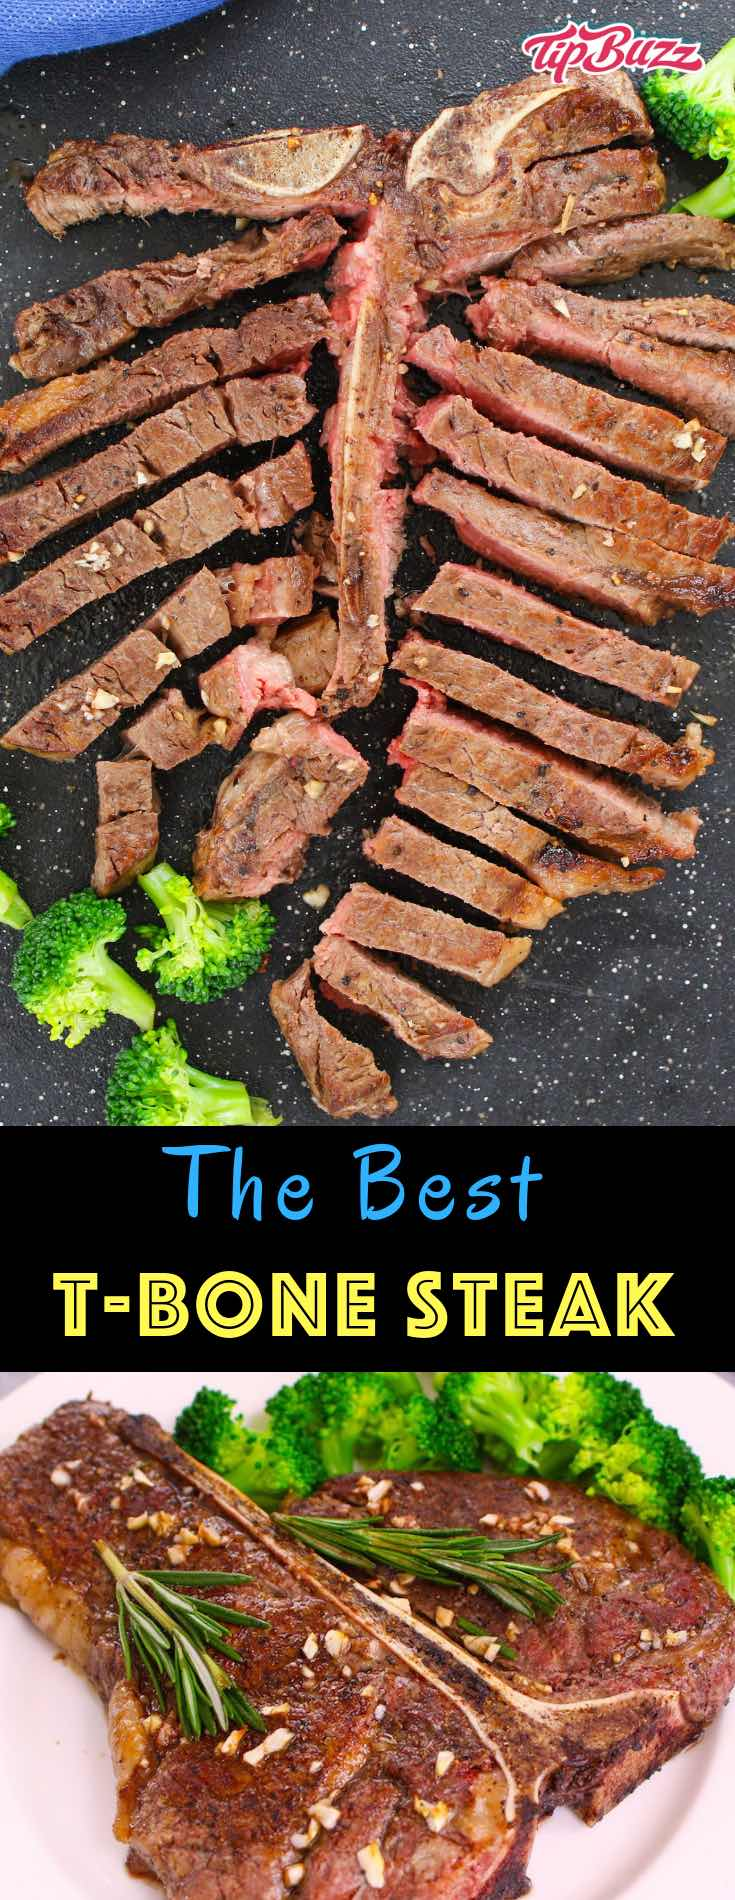 T-bone Steak seared to caramelized perfection on the outside and juicy in the middle. It's full of flavor with no marinating needed. Ready in less than 15 minutes, it is a quick and easy family favorite!